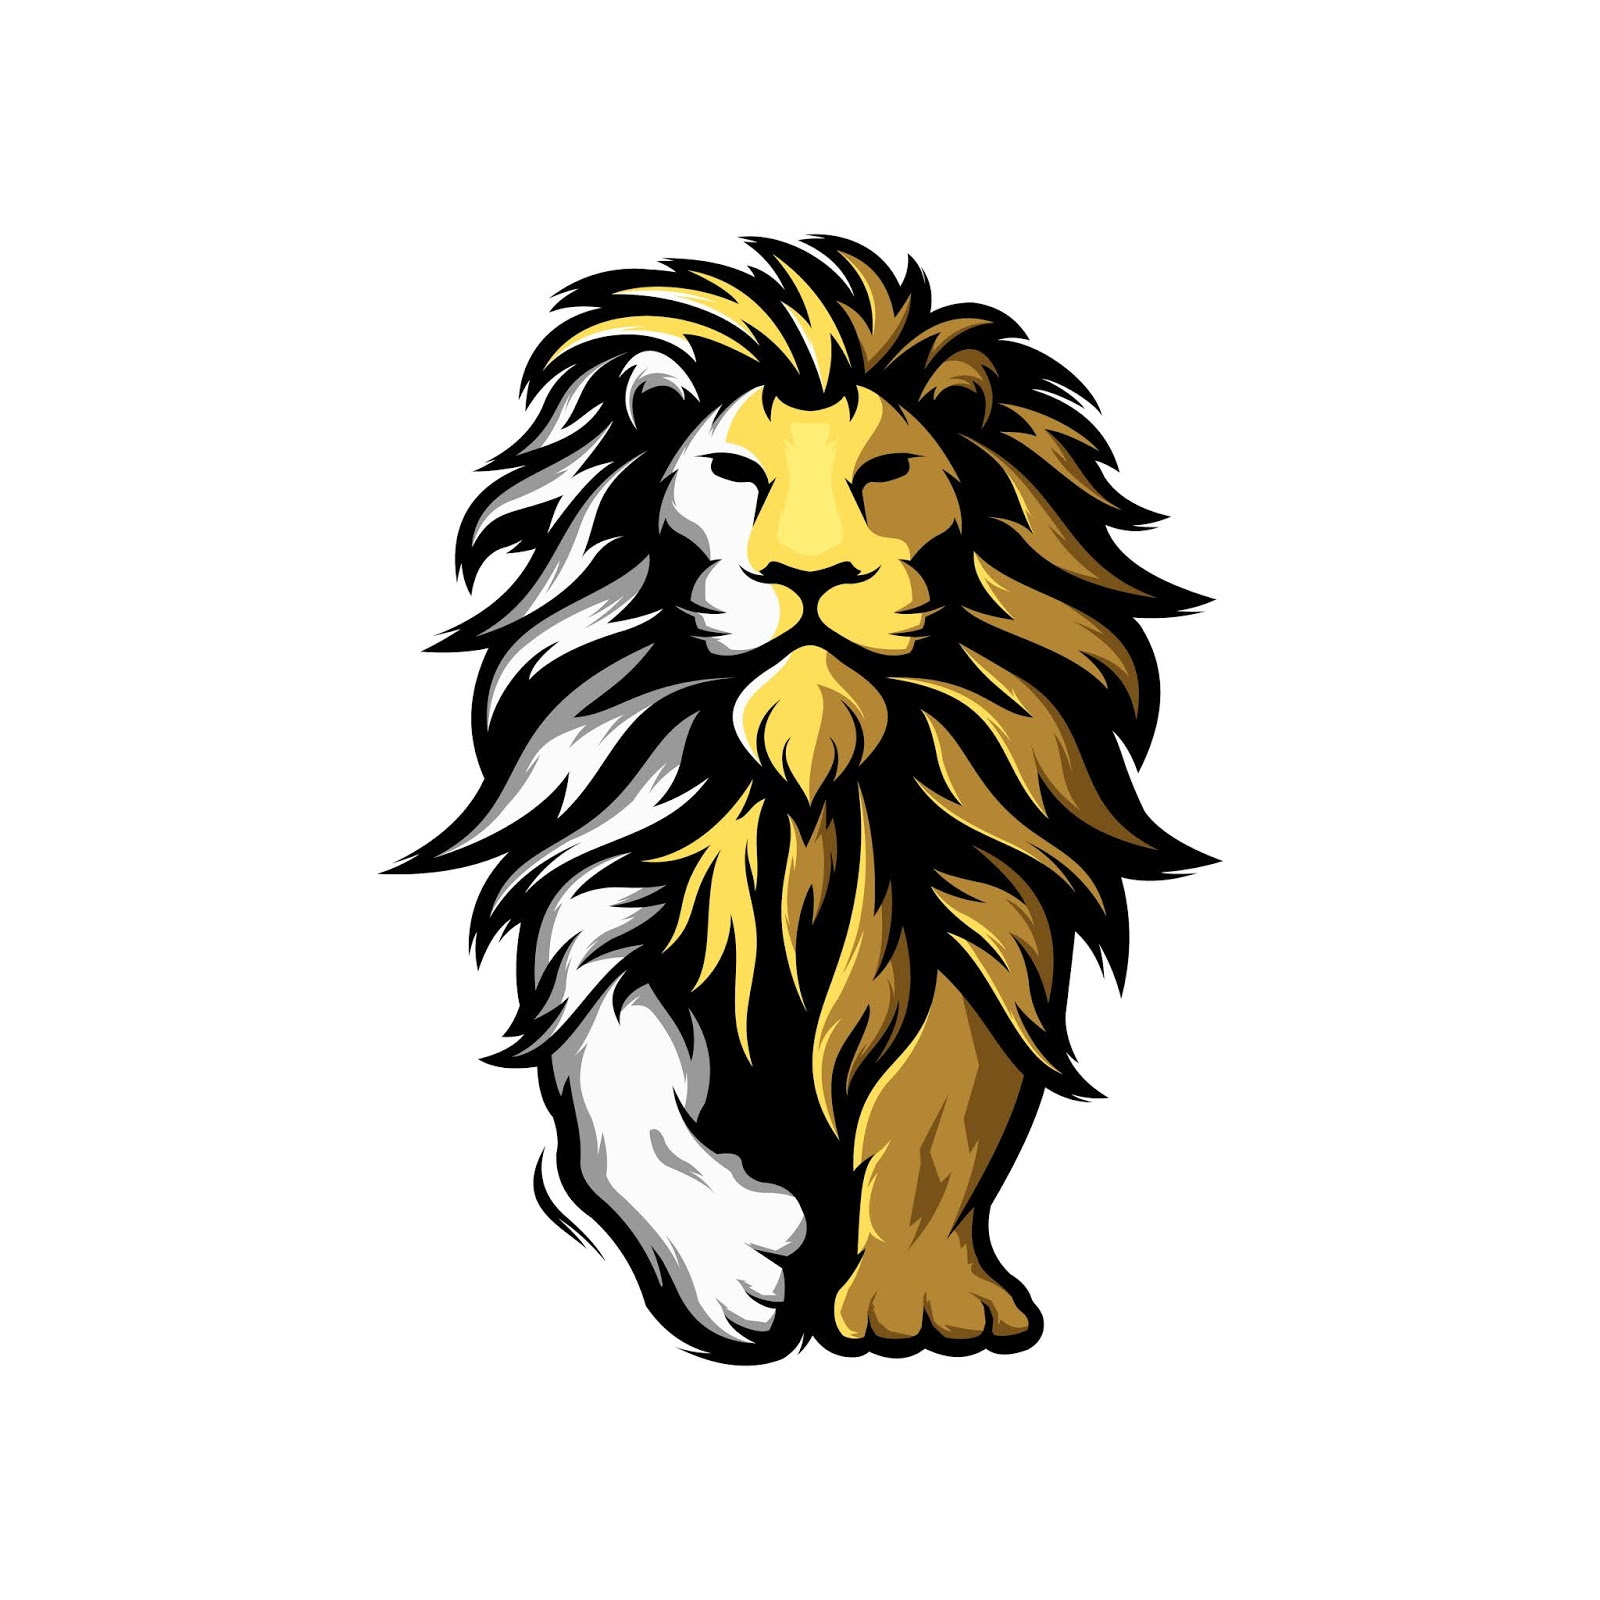 Awesome Mascot Lion Logo Free Download Vector CDR, AI, EPS and PNG Formats